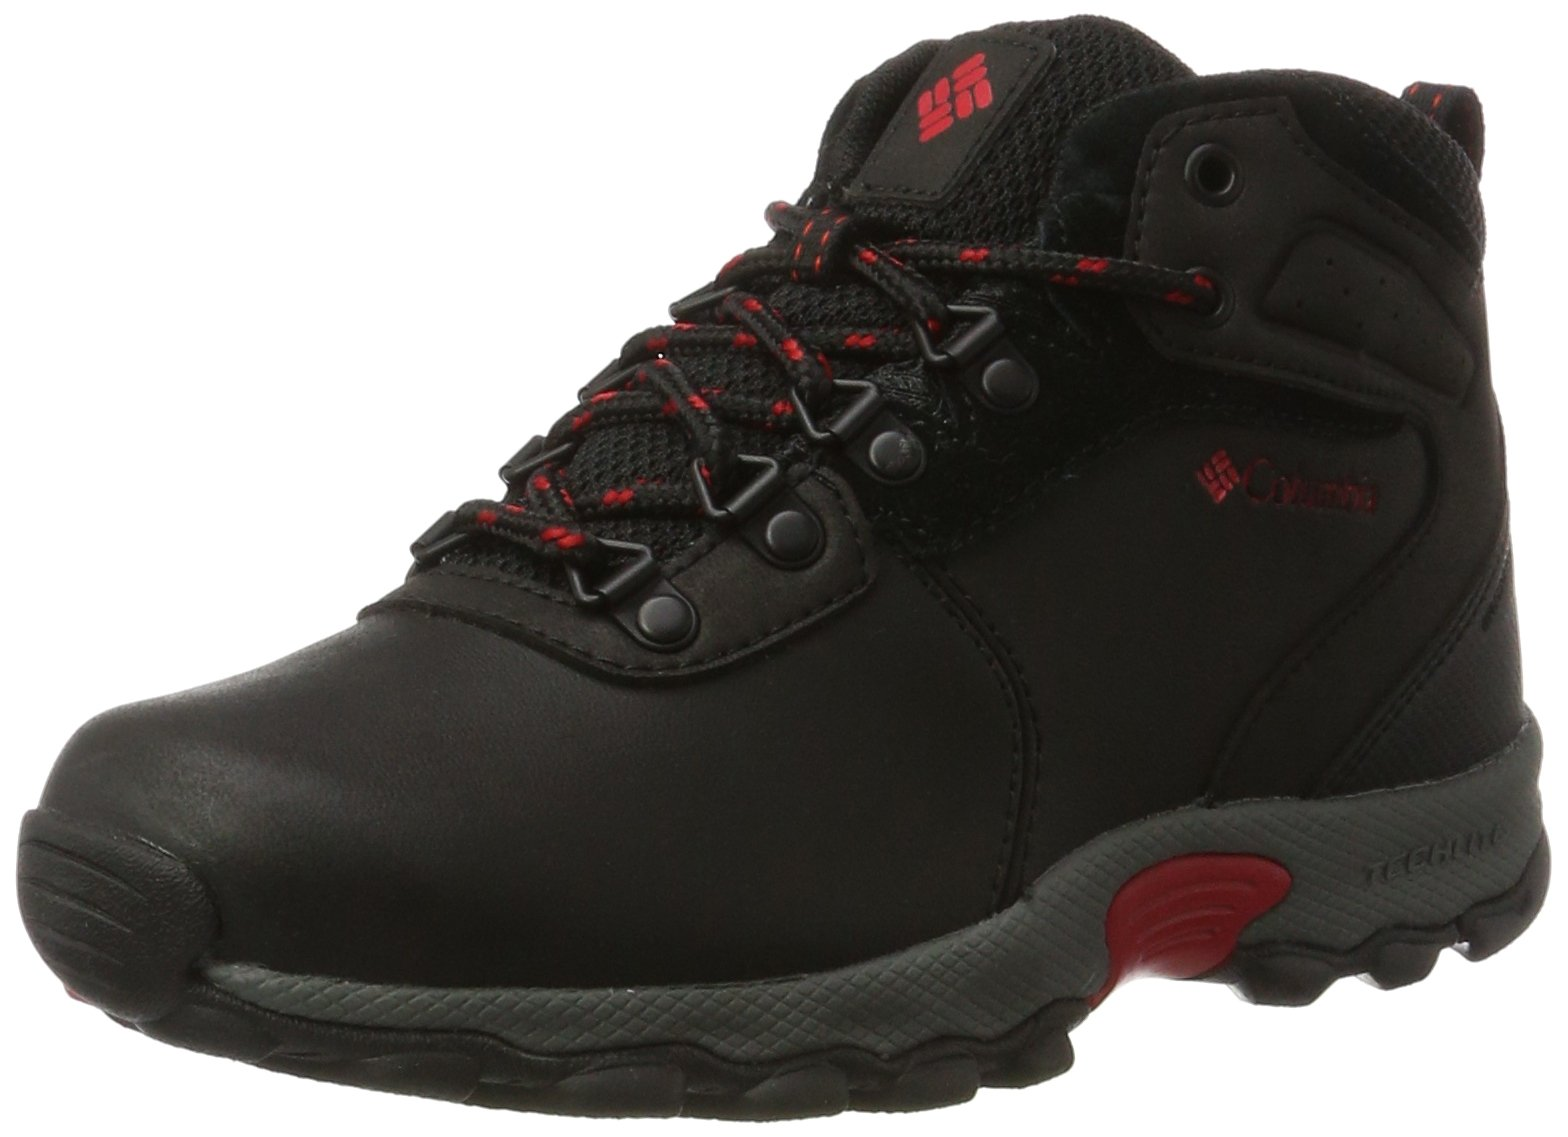 Columbia Unisex Youth Newton Ridge Hiking Shoe Black, Mountain red 2 Regular US Little Kid